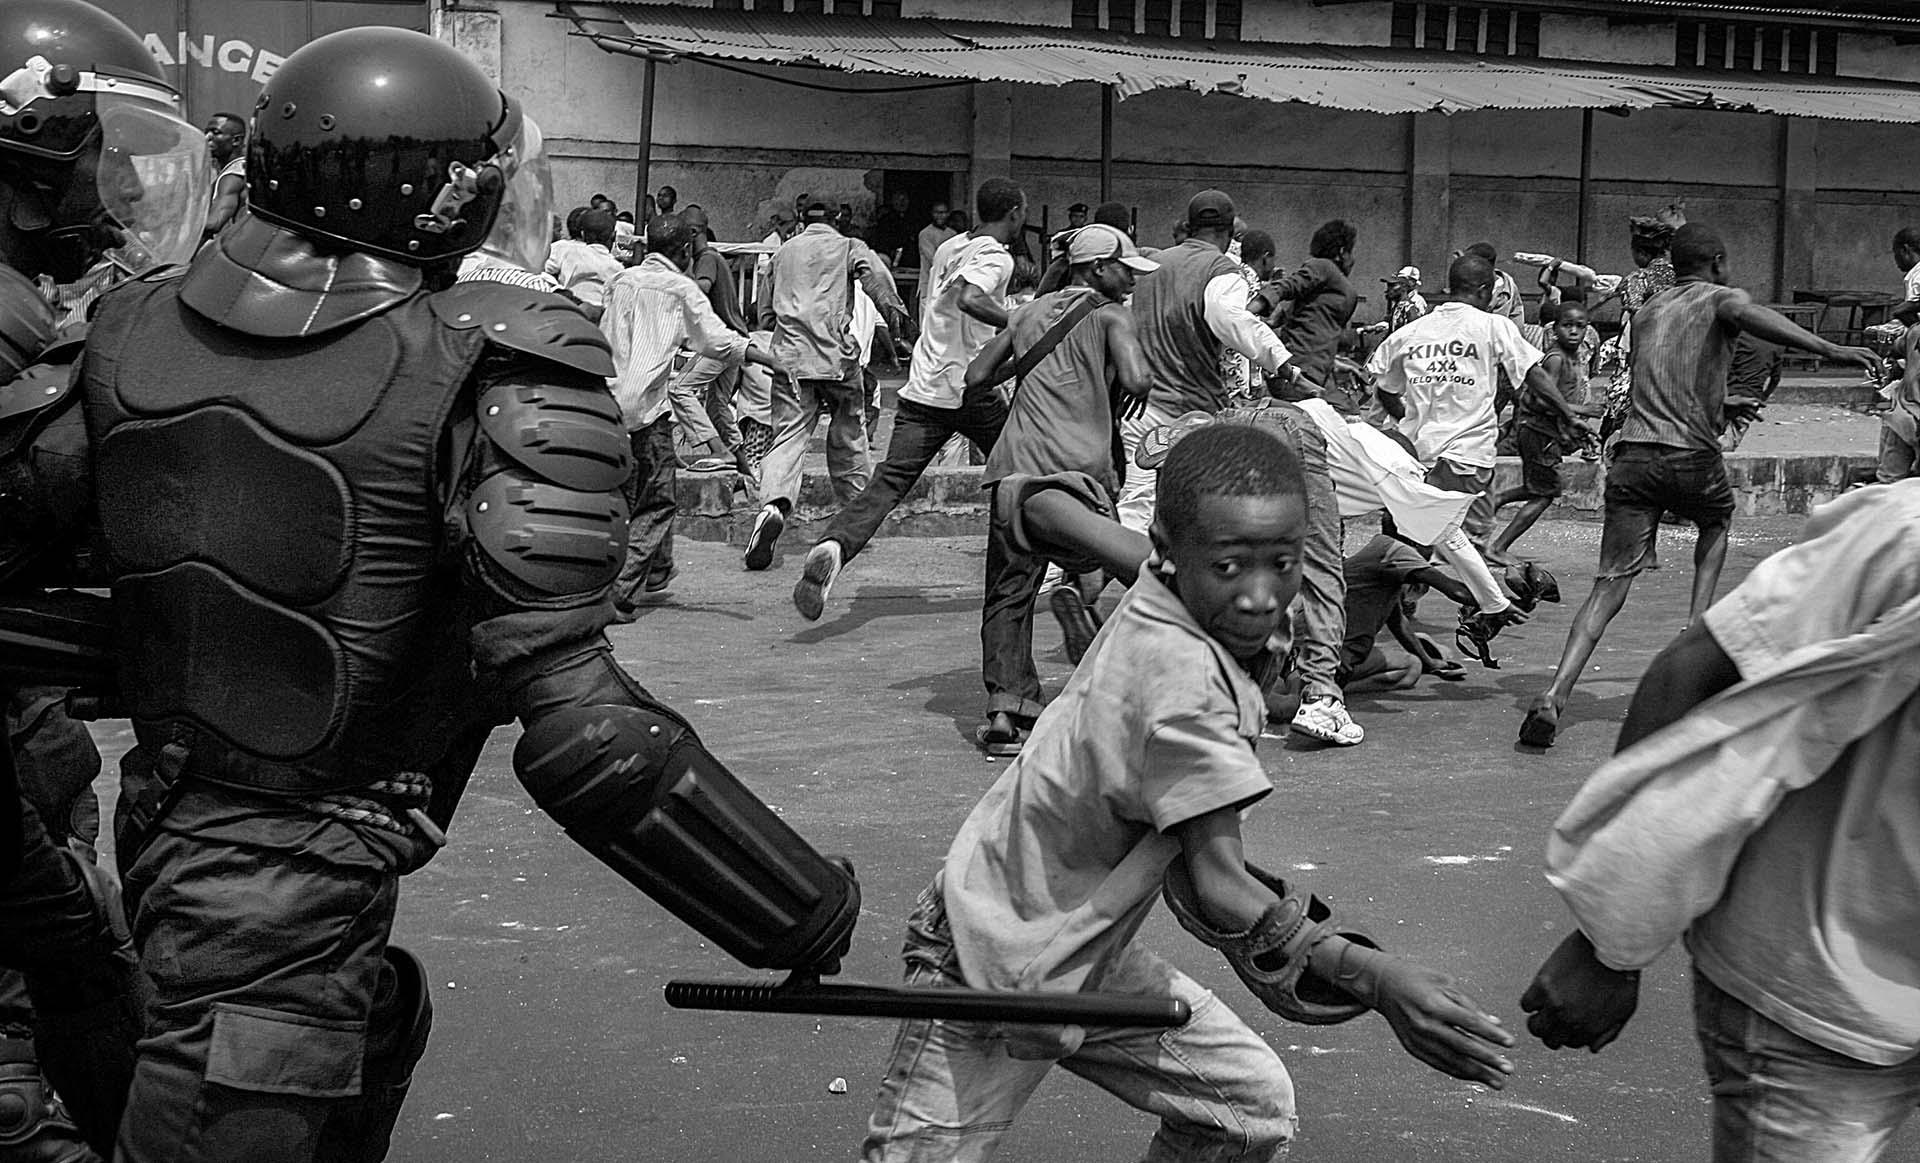 Riot police advance to UDPS protesters in Kinshasa, DR Congo.